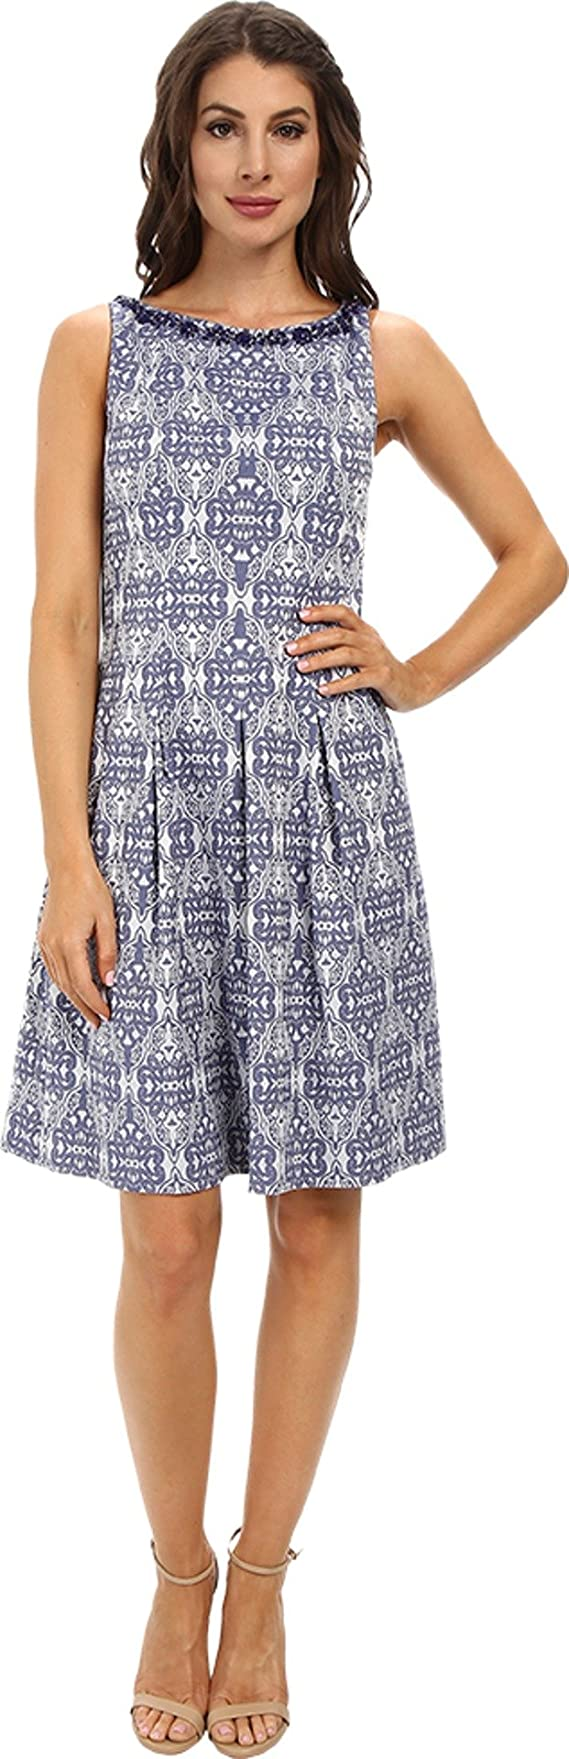 Adrianna Papell Women's Release Pleat Fit and Flare Dress